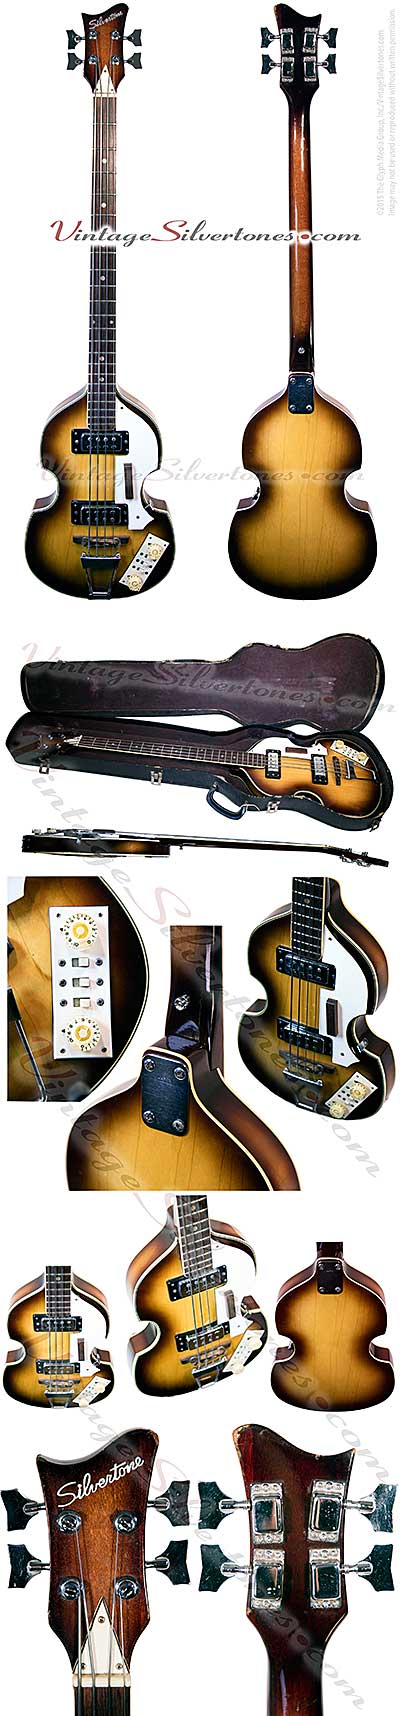 Silvertone bass - Beatles violin shaped, 2 pickups, sunburst finish, made in Japan circa 1966